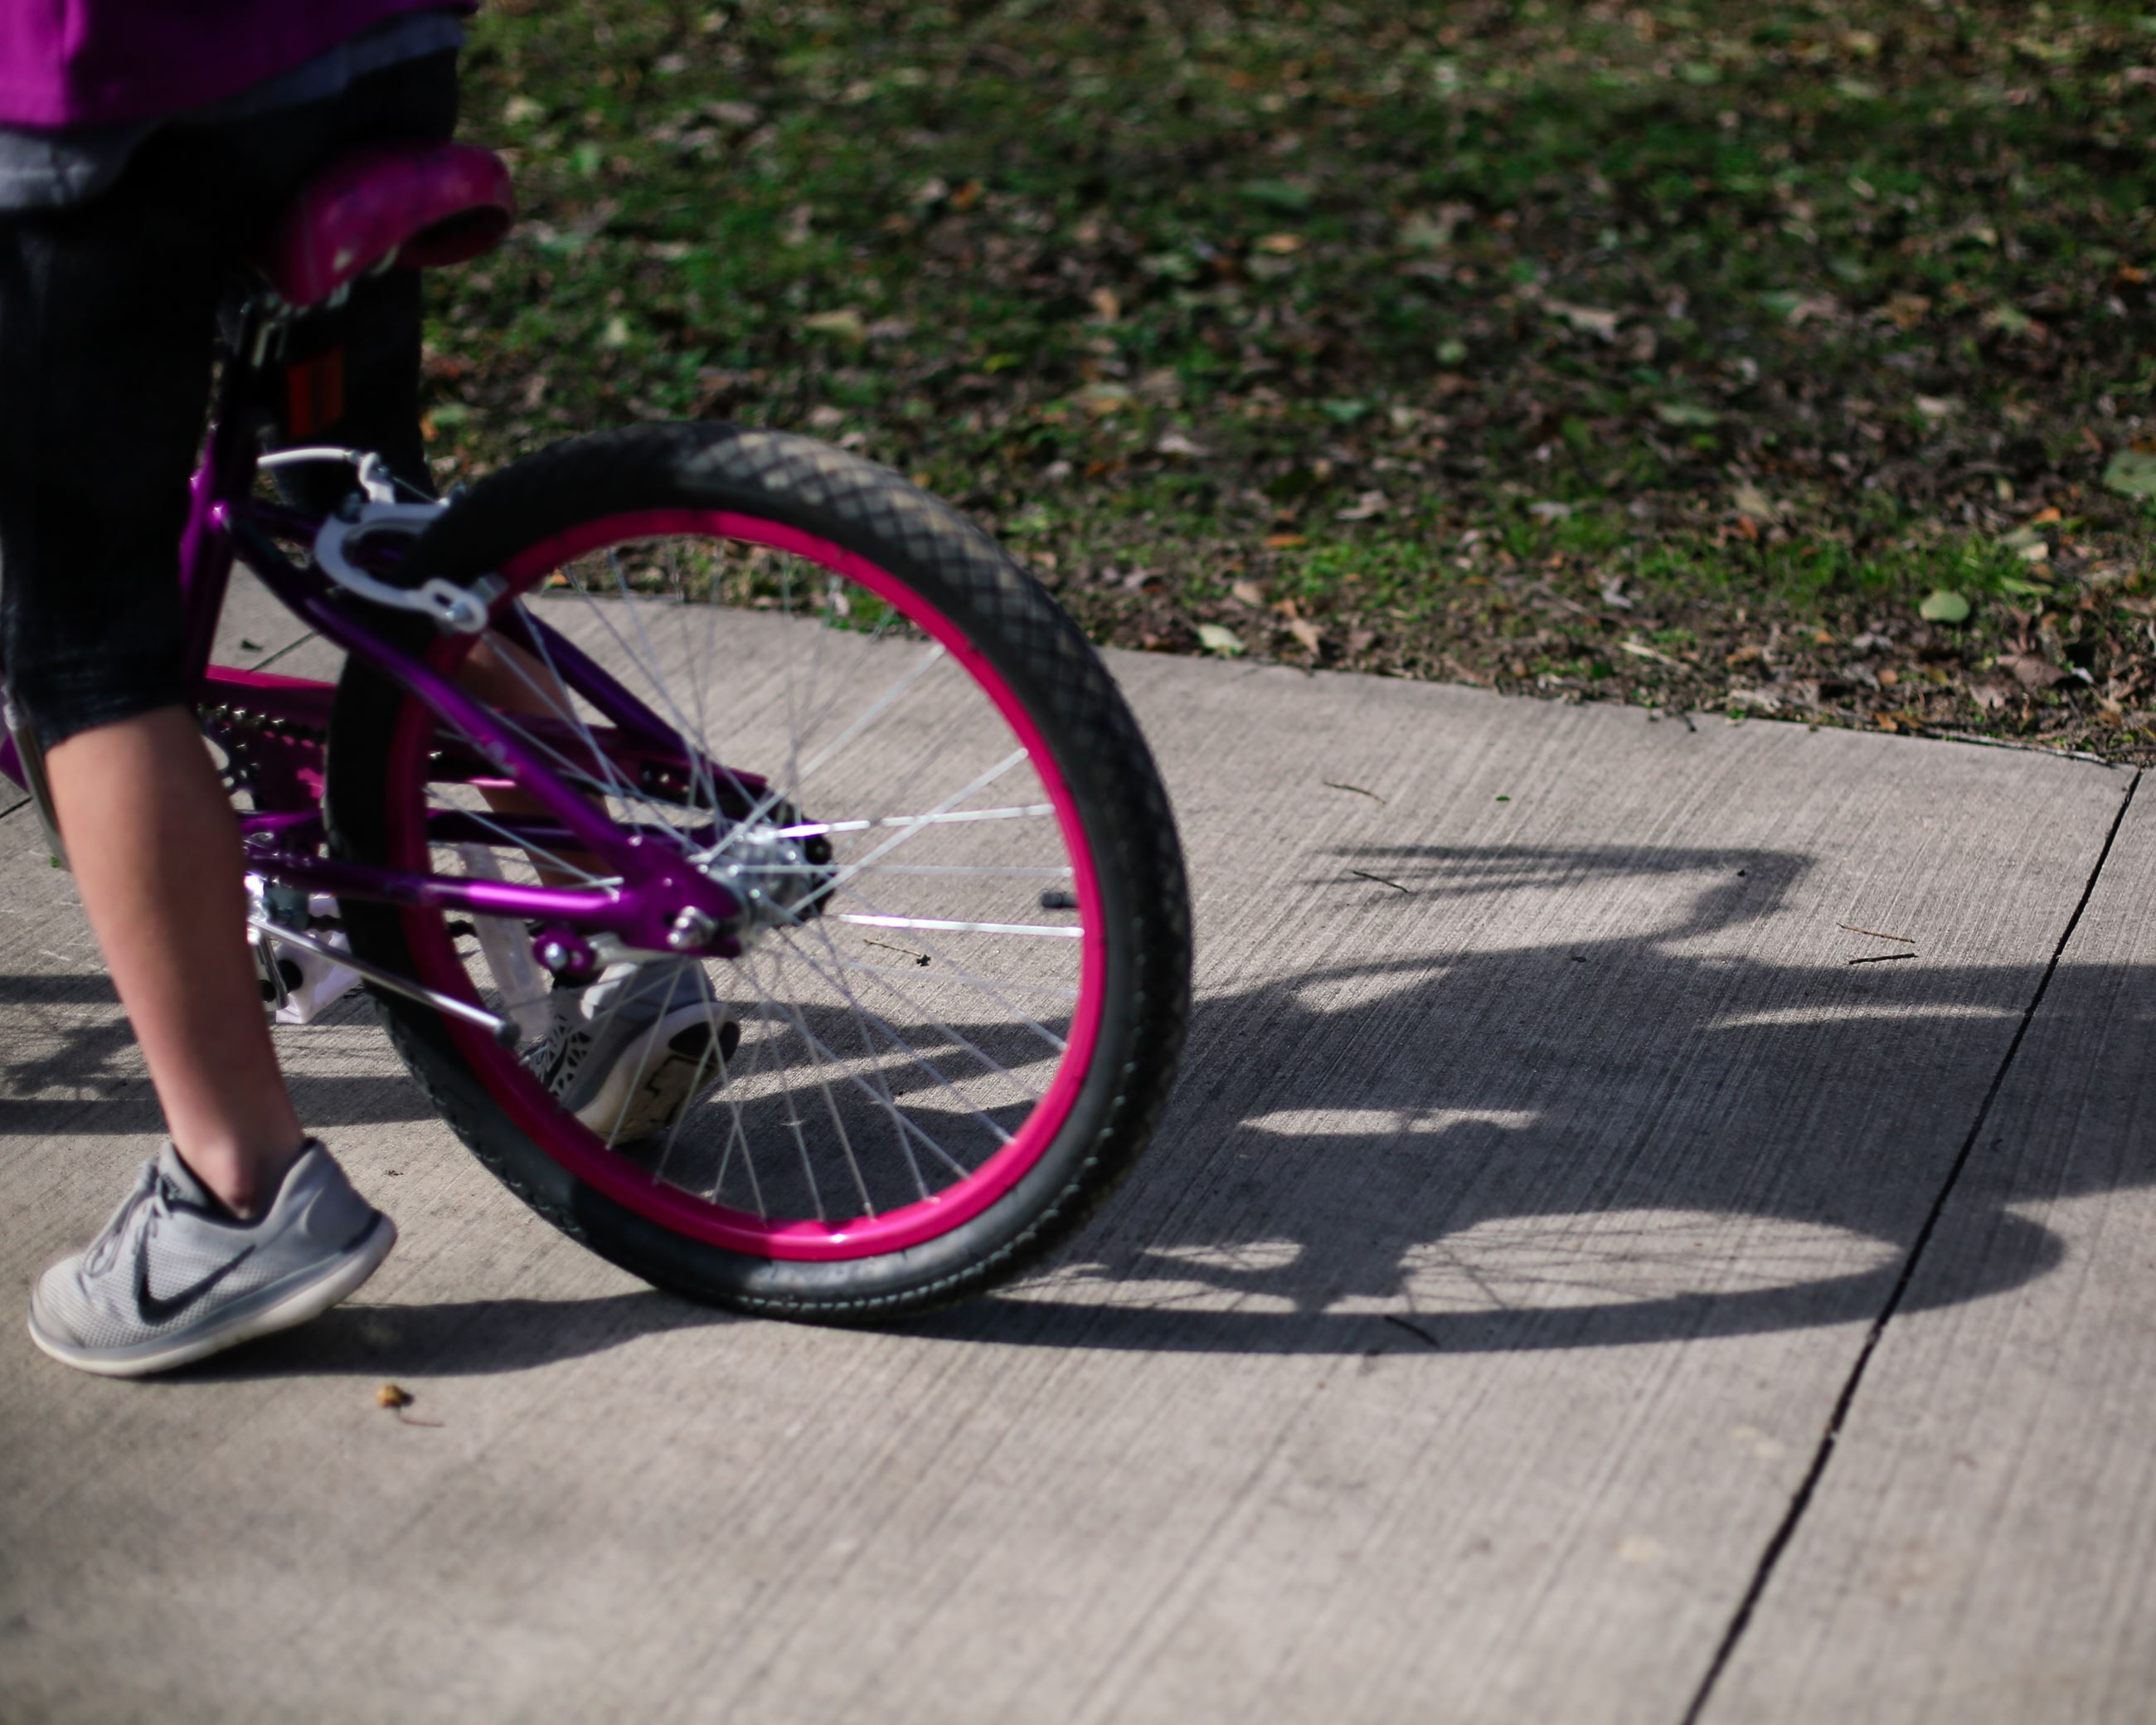 Back wheel of a girl's bike